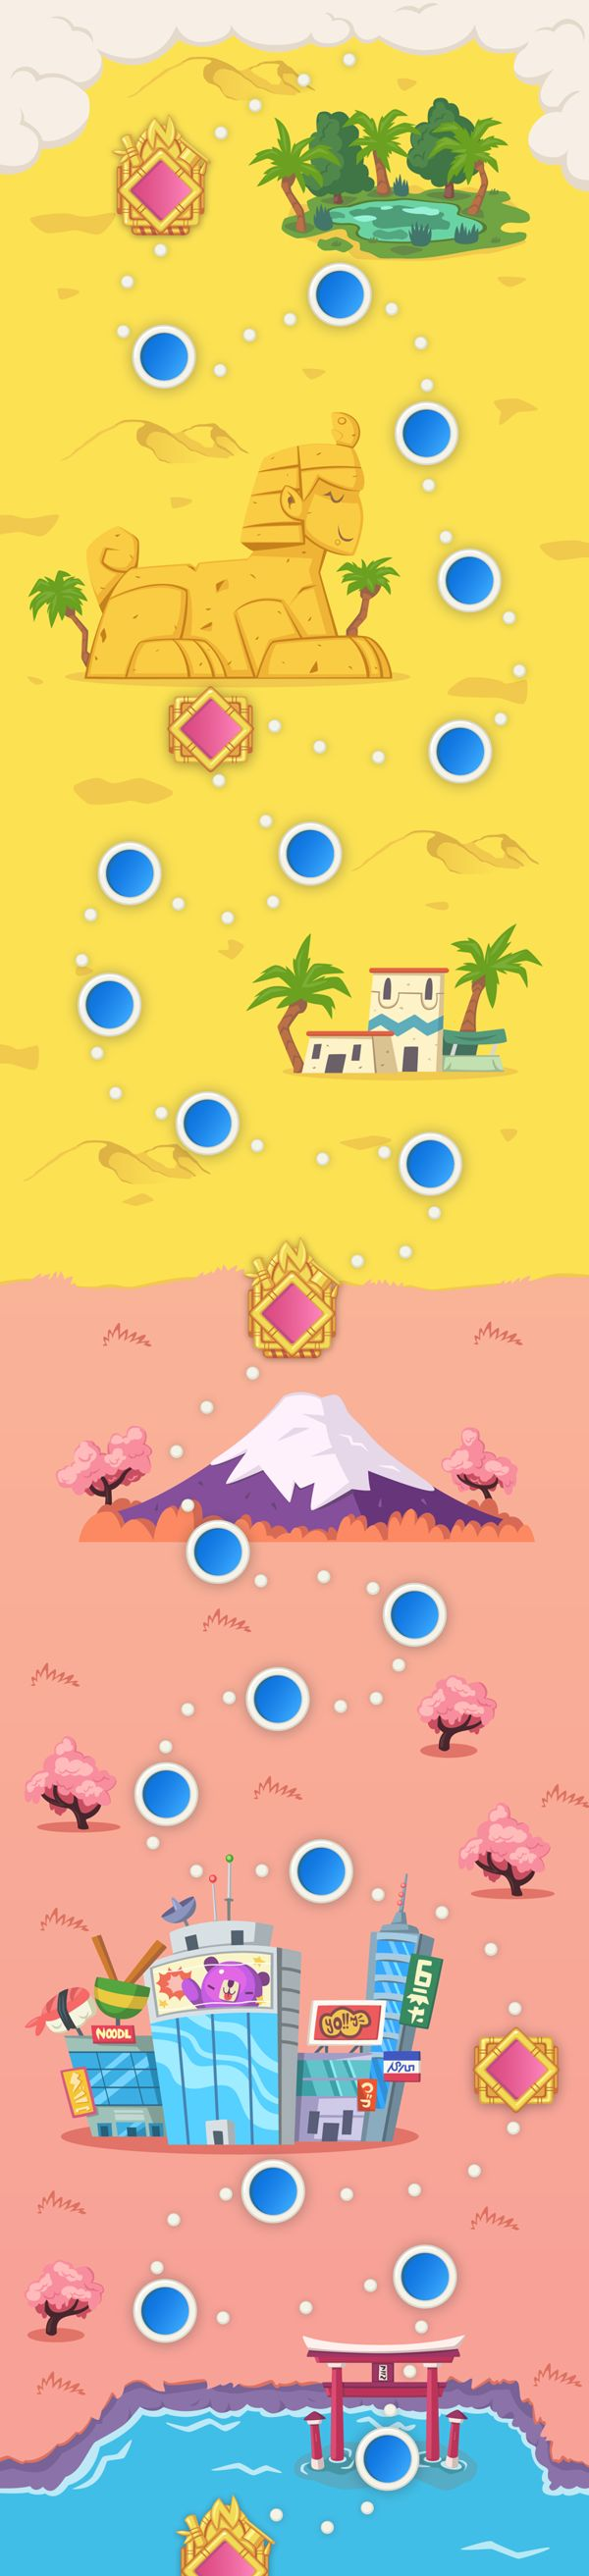 Dr.Newton Mobile Game: World Map by Andreas Polyviou, via Behance